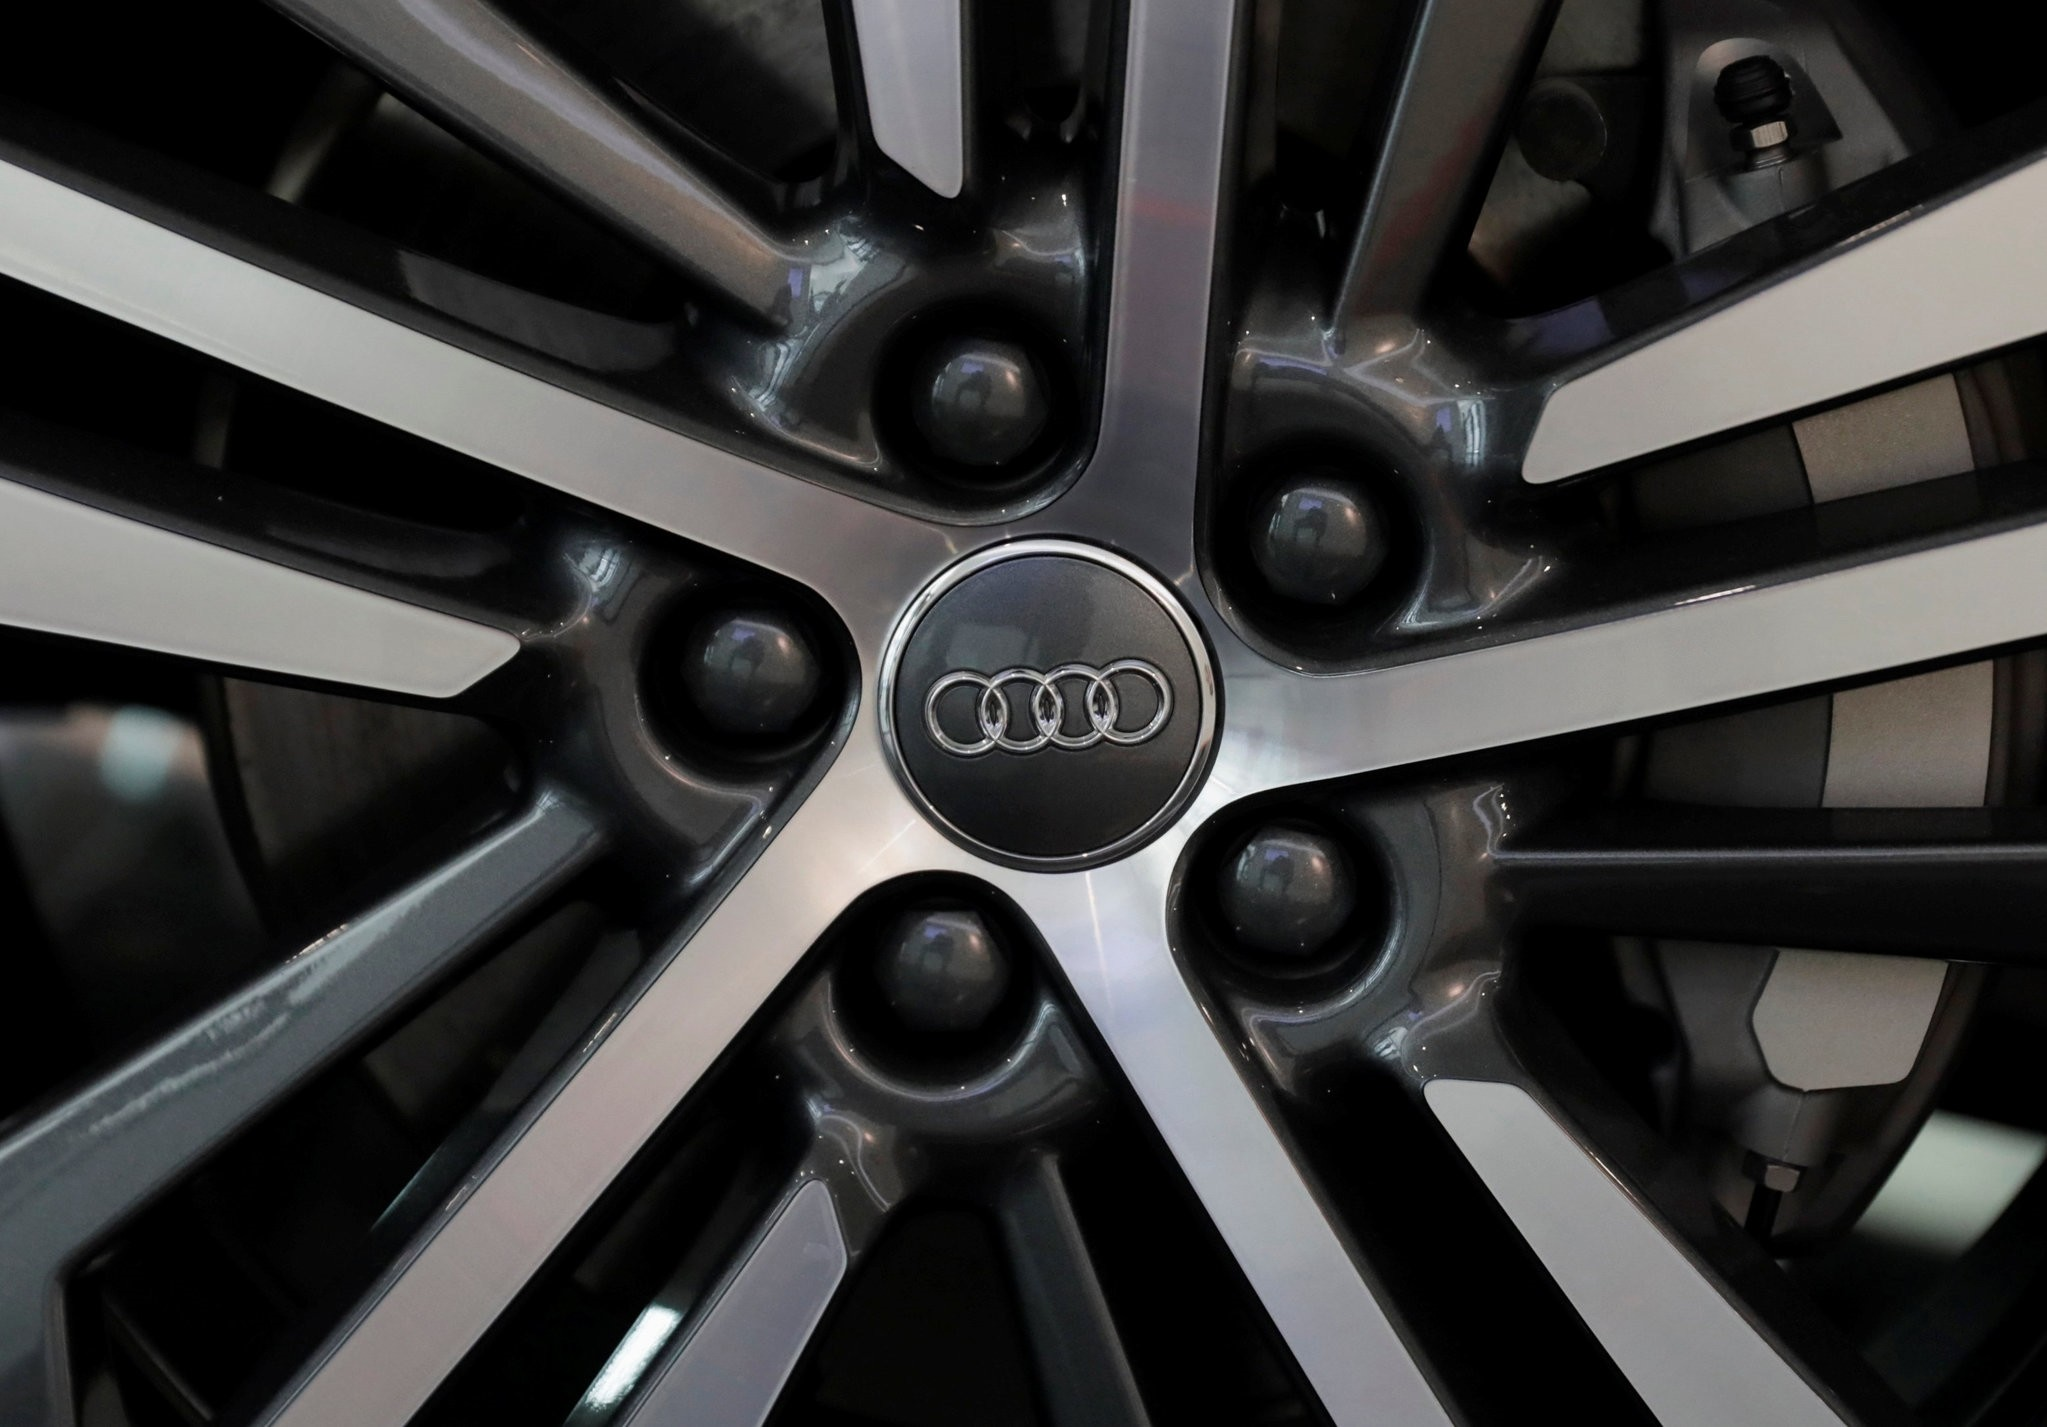 The logo of German car manufacturer Audi is seen on a tyre rim a Audi Q5 2.0 during a media tour in San Jose Chilapa, Mexico April 19, 2018. (REUTERS Photo)